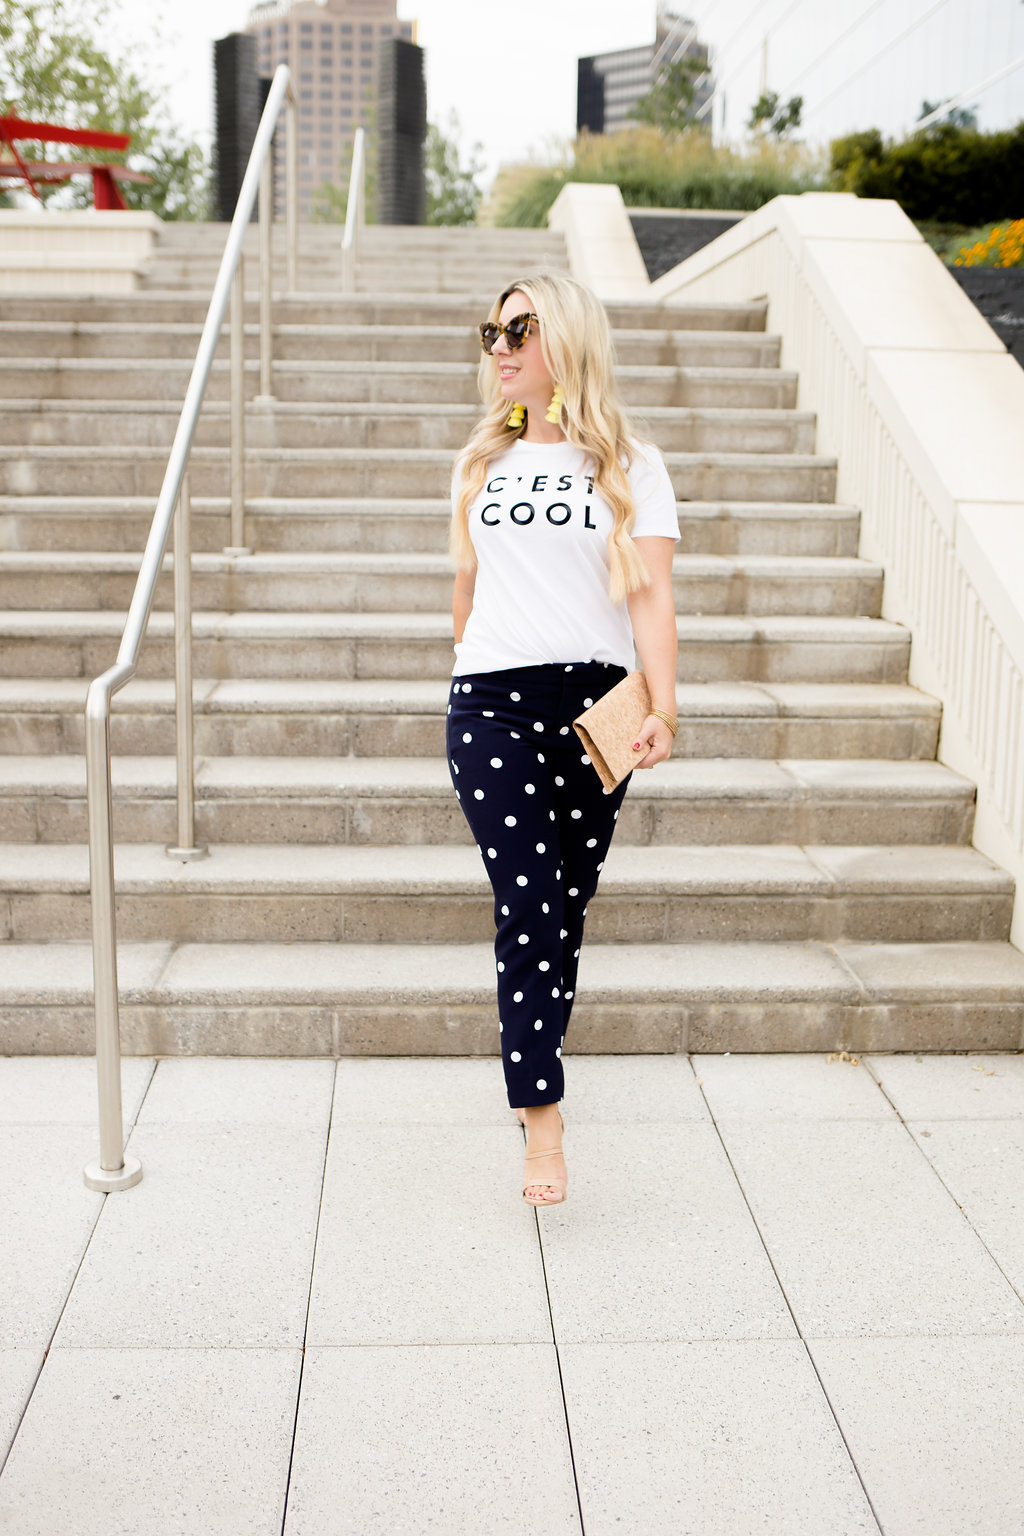 Fancy Pants, Workwear With A Twist | Polkadots | The Darling Petite Diva